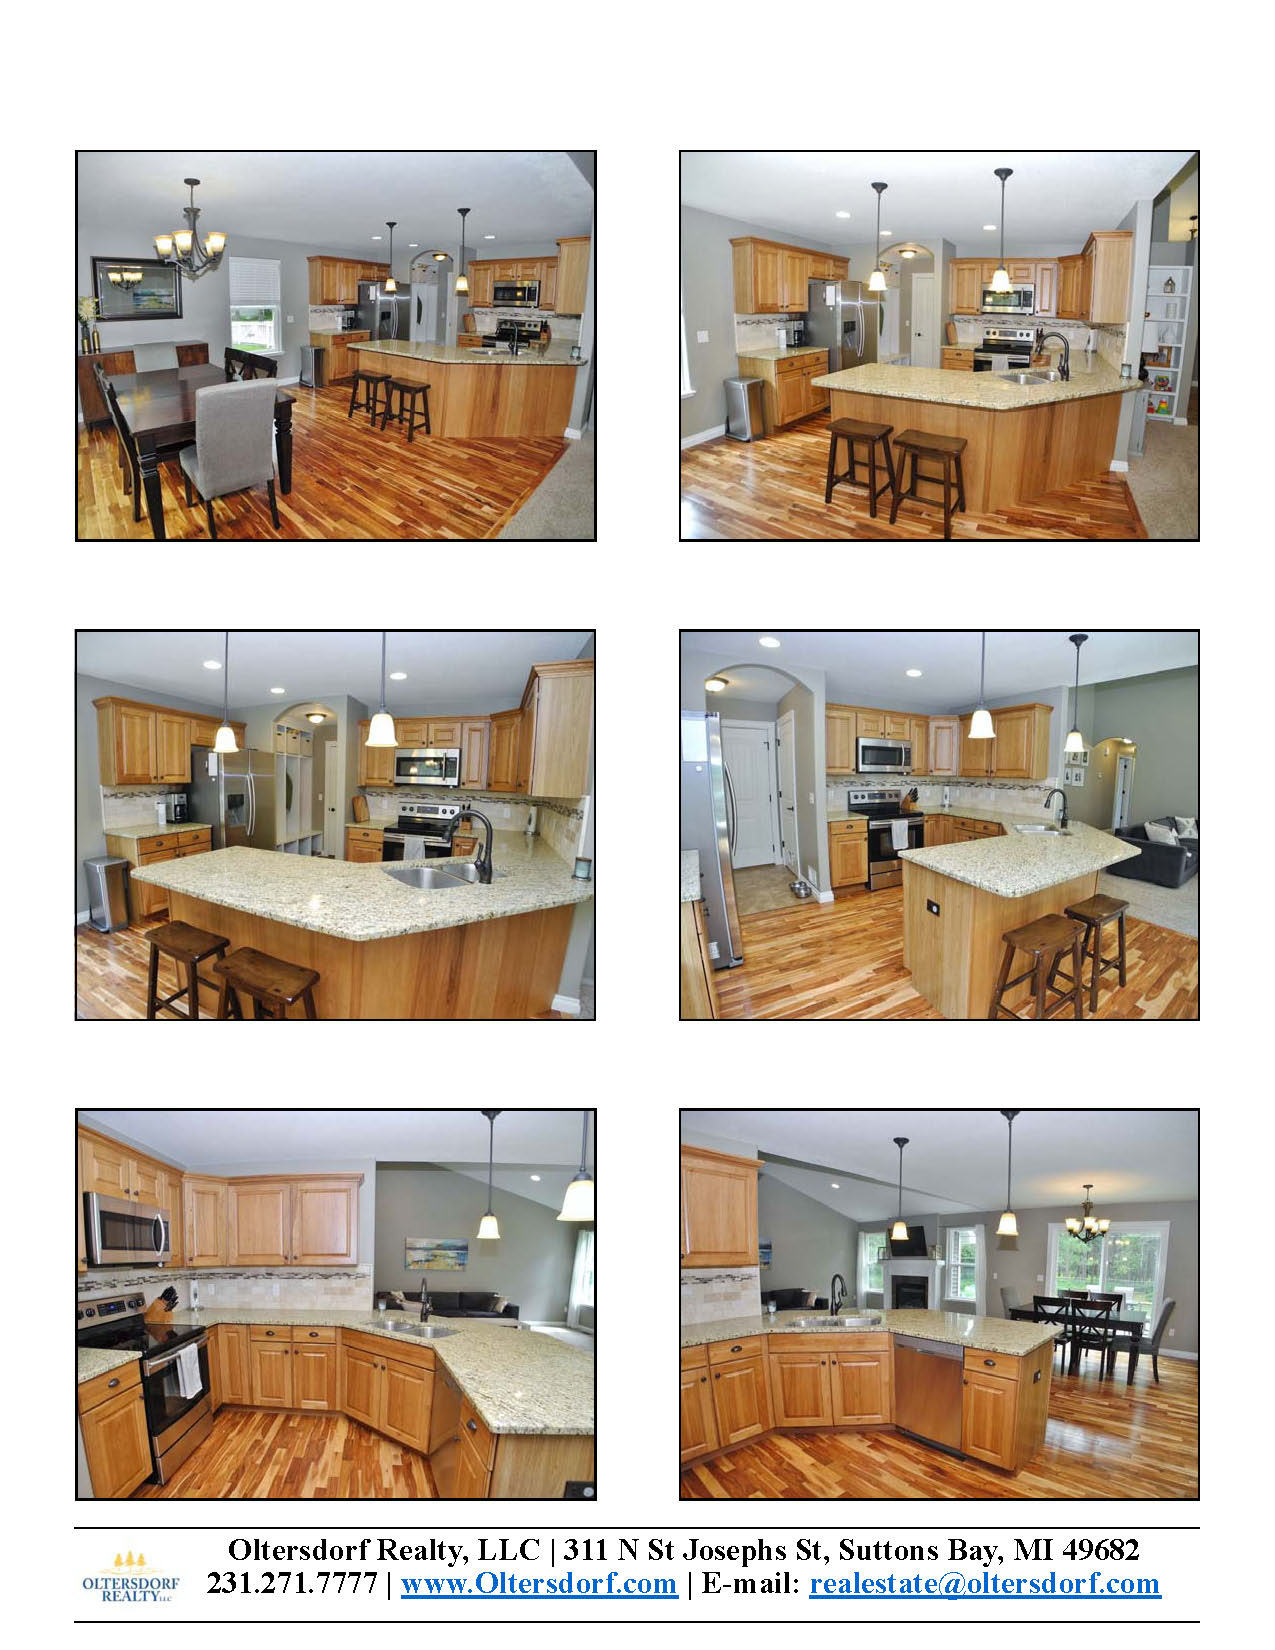 10049 Fishers Run, Traverse City, MI – Newer 2,175 Sq Ft Home on 1.32 Acres - Marketing Packet (6).jpg